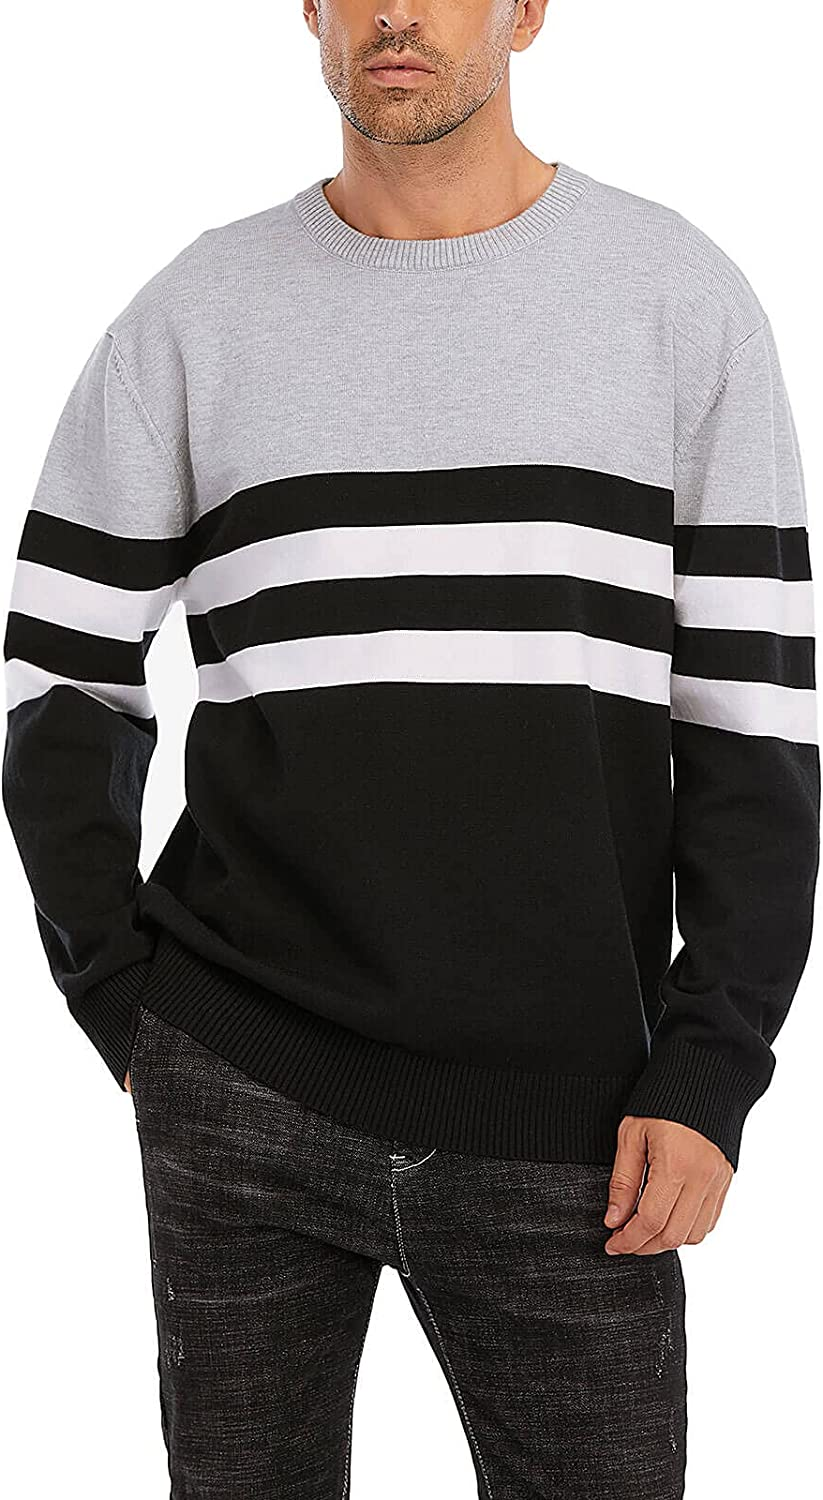 Cogild Mens Branded goods Casual Crewneck Pullover Twisted Cheap bargain Knitted Sweater The